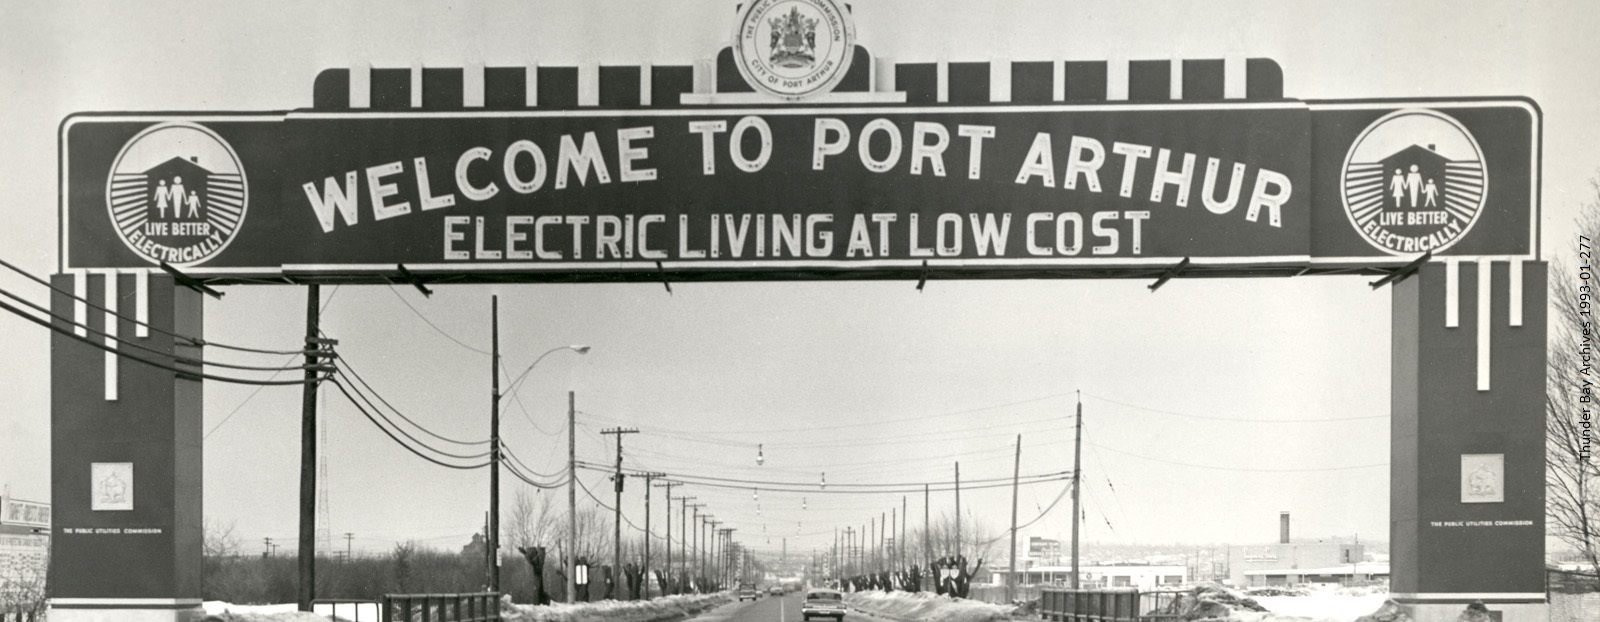 black and white photo of archway over road with sign for Port Arthur